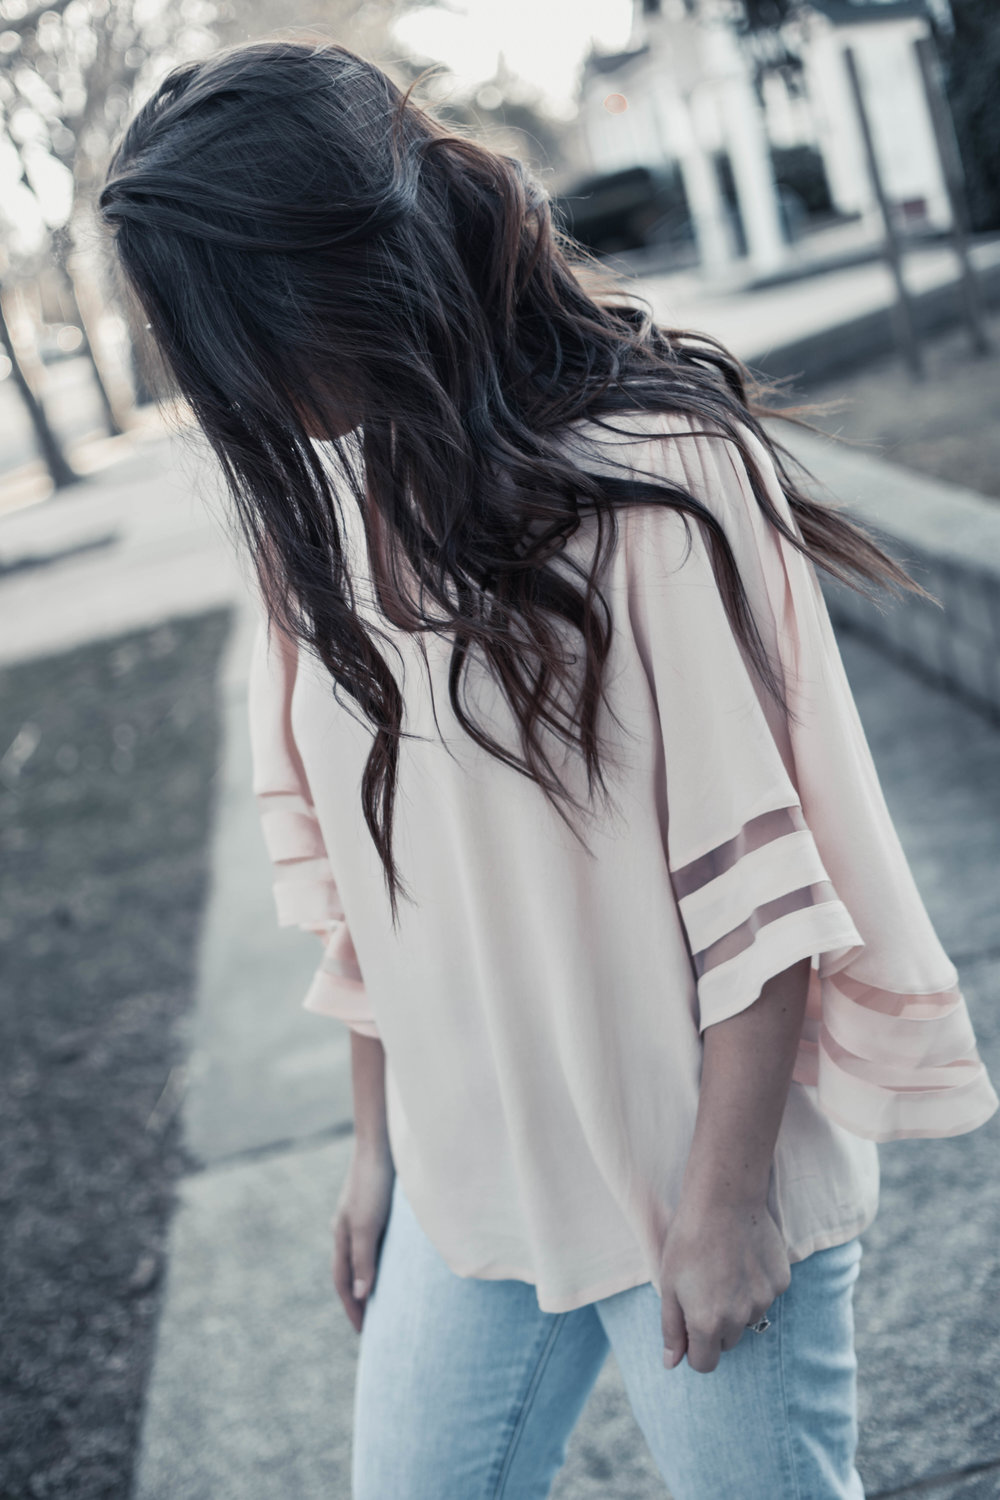 How to Wear the Sheer Trend this Spring | Pine Barren Beauty | blush top with sheer inserts, madewell denim, spring outfit idea, spring outfit inspiration, spring fashion